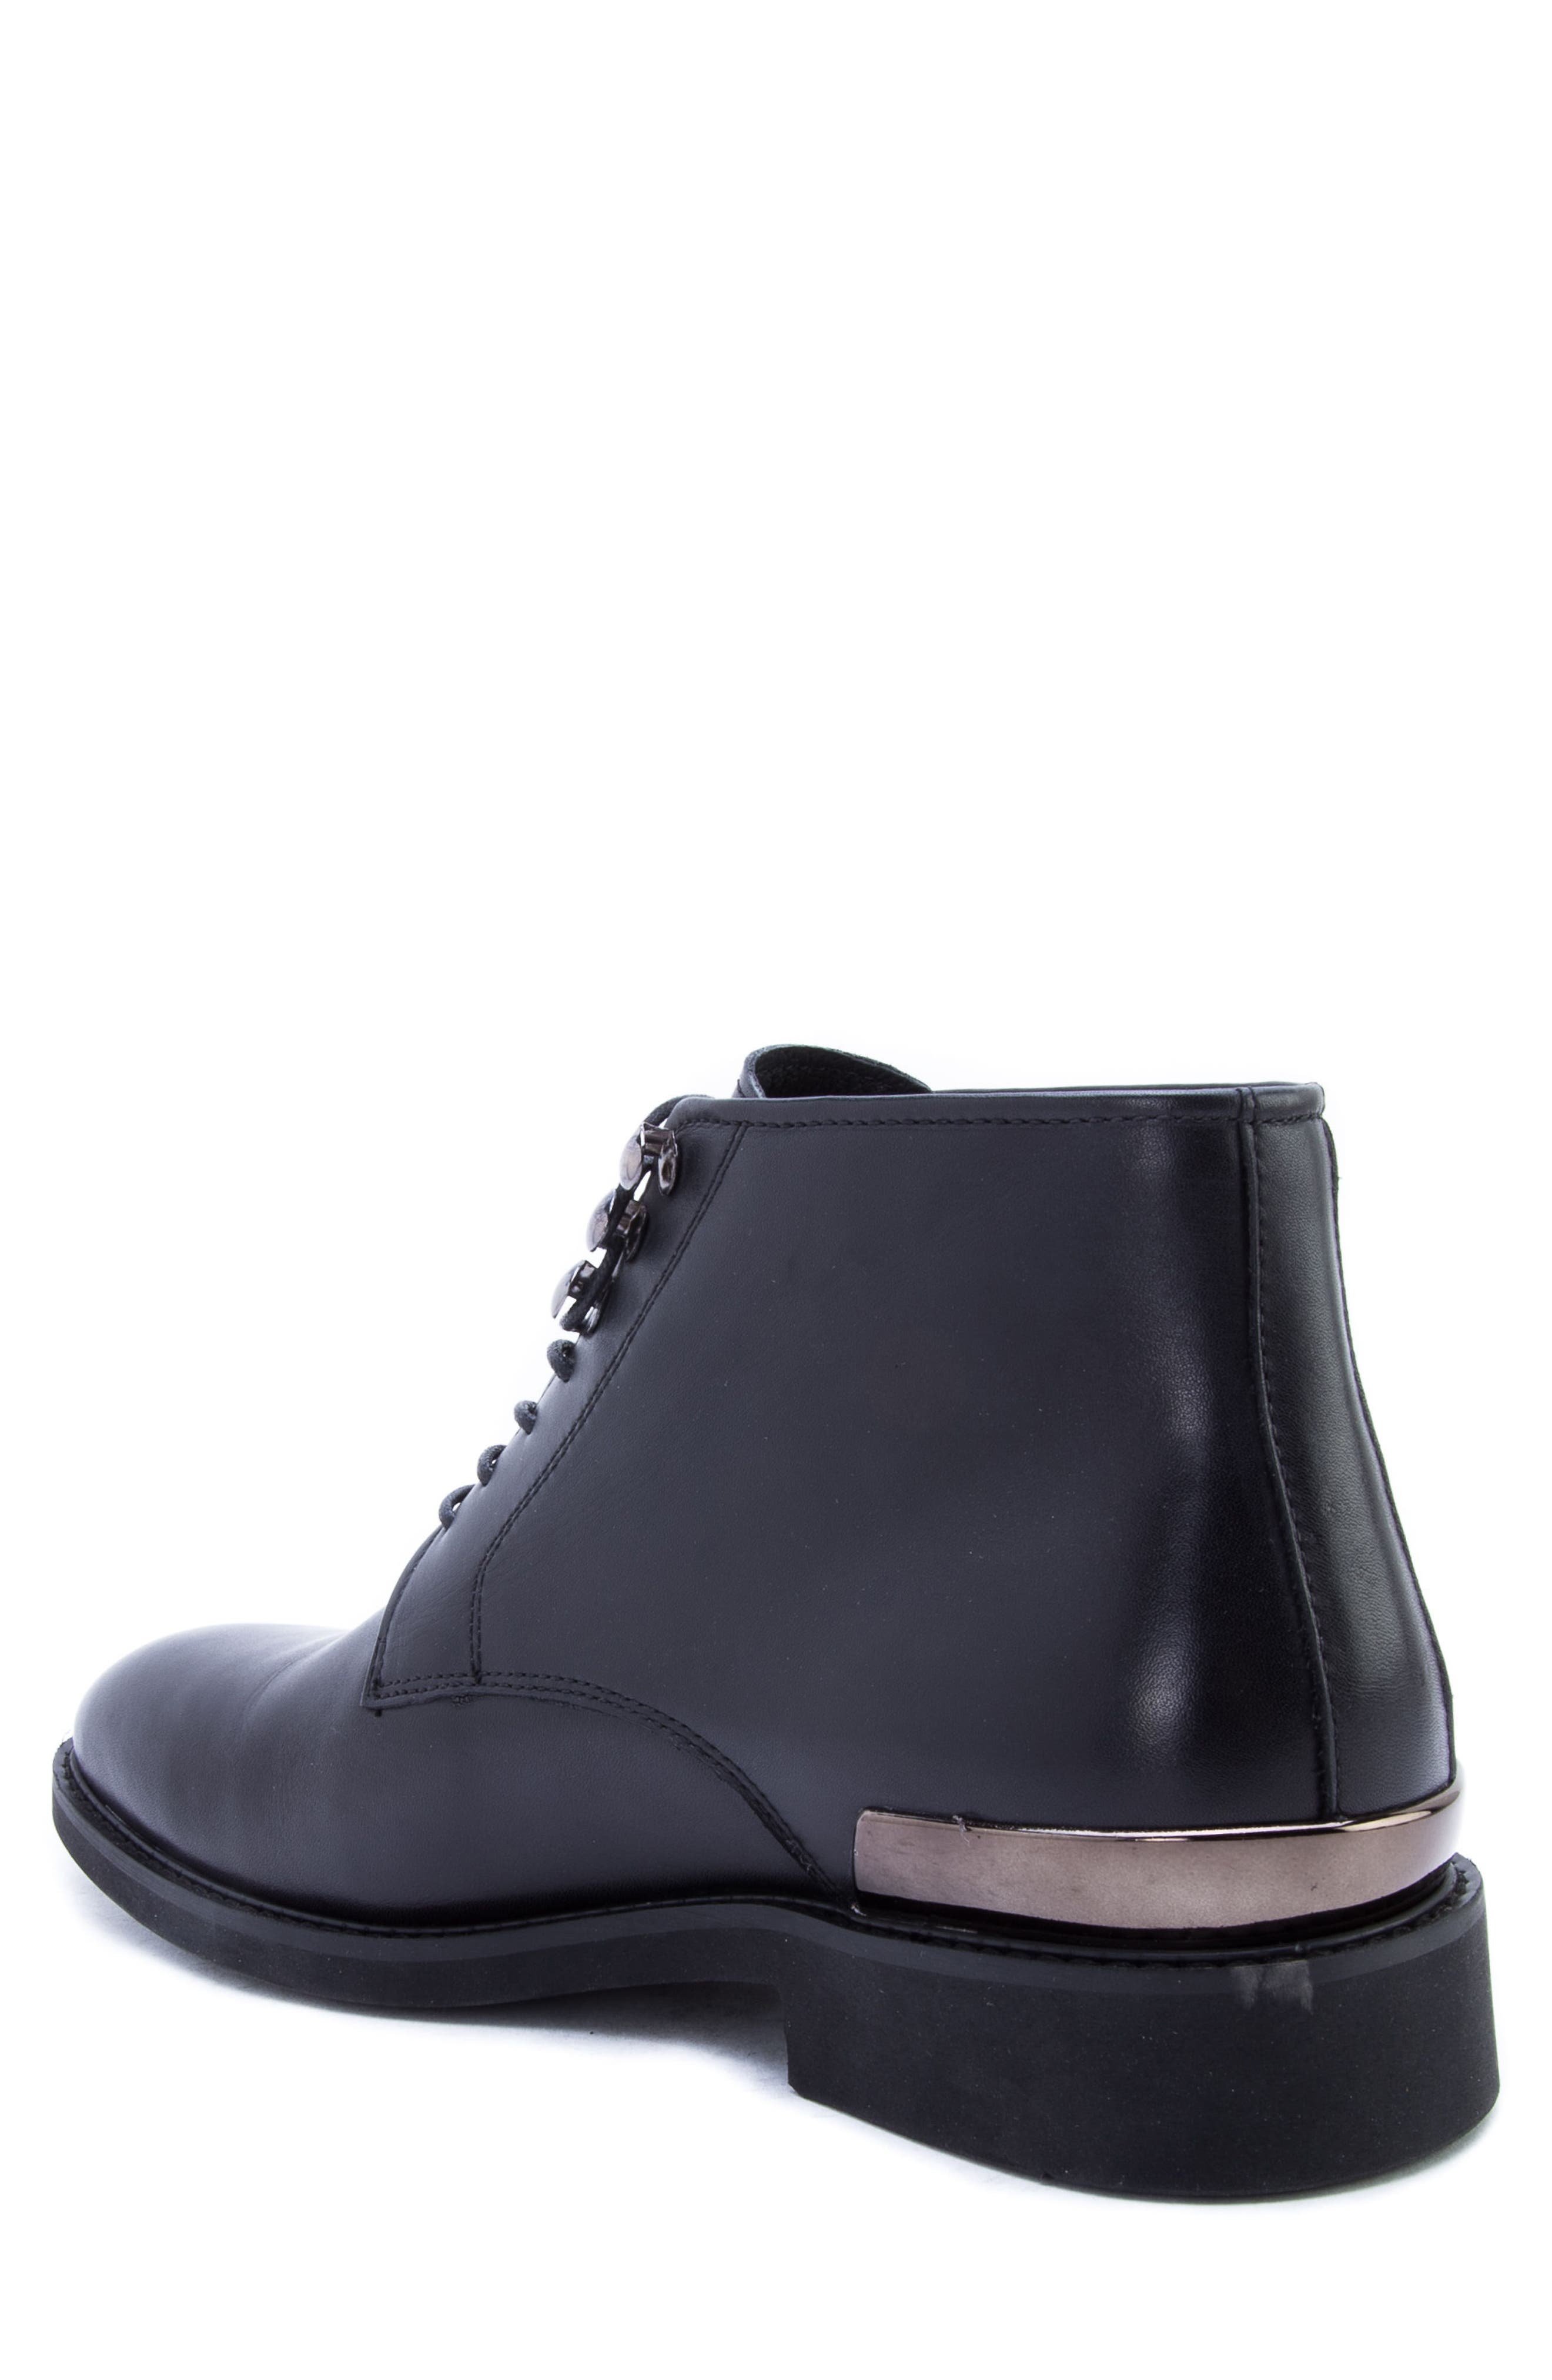 Soland Boot,                             Alternate thumbnail 2, color,                             BLACK LEATHER